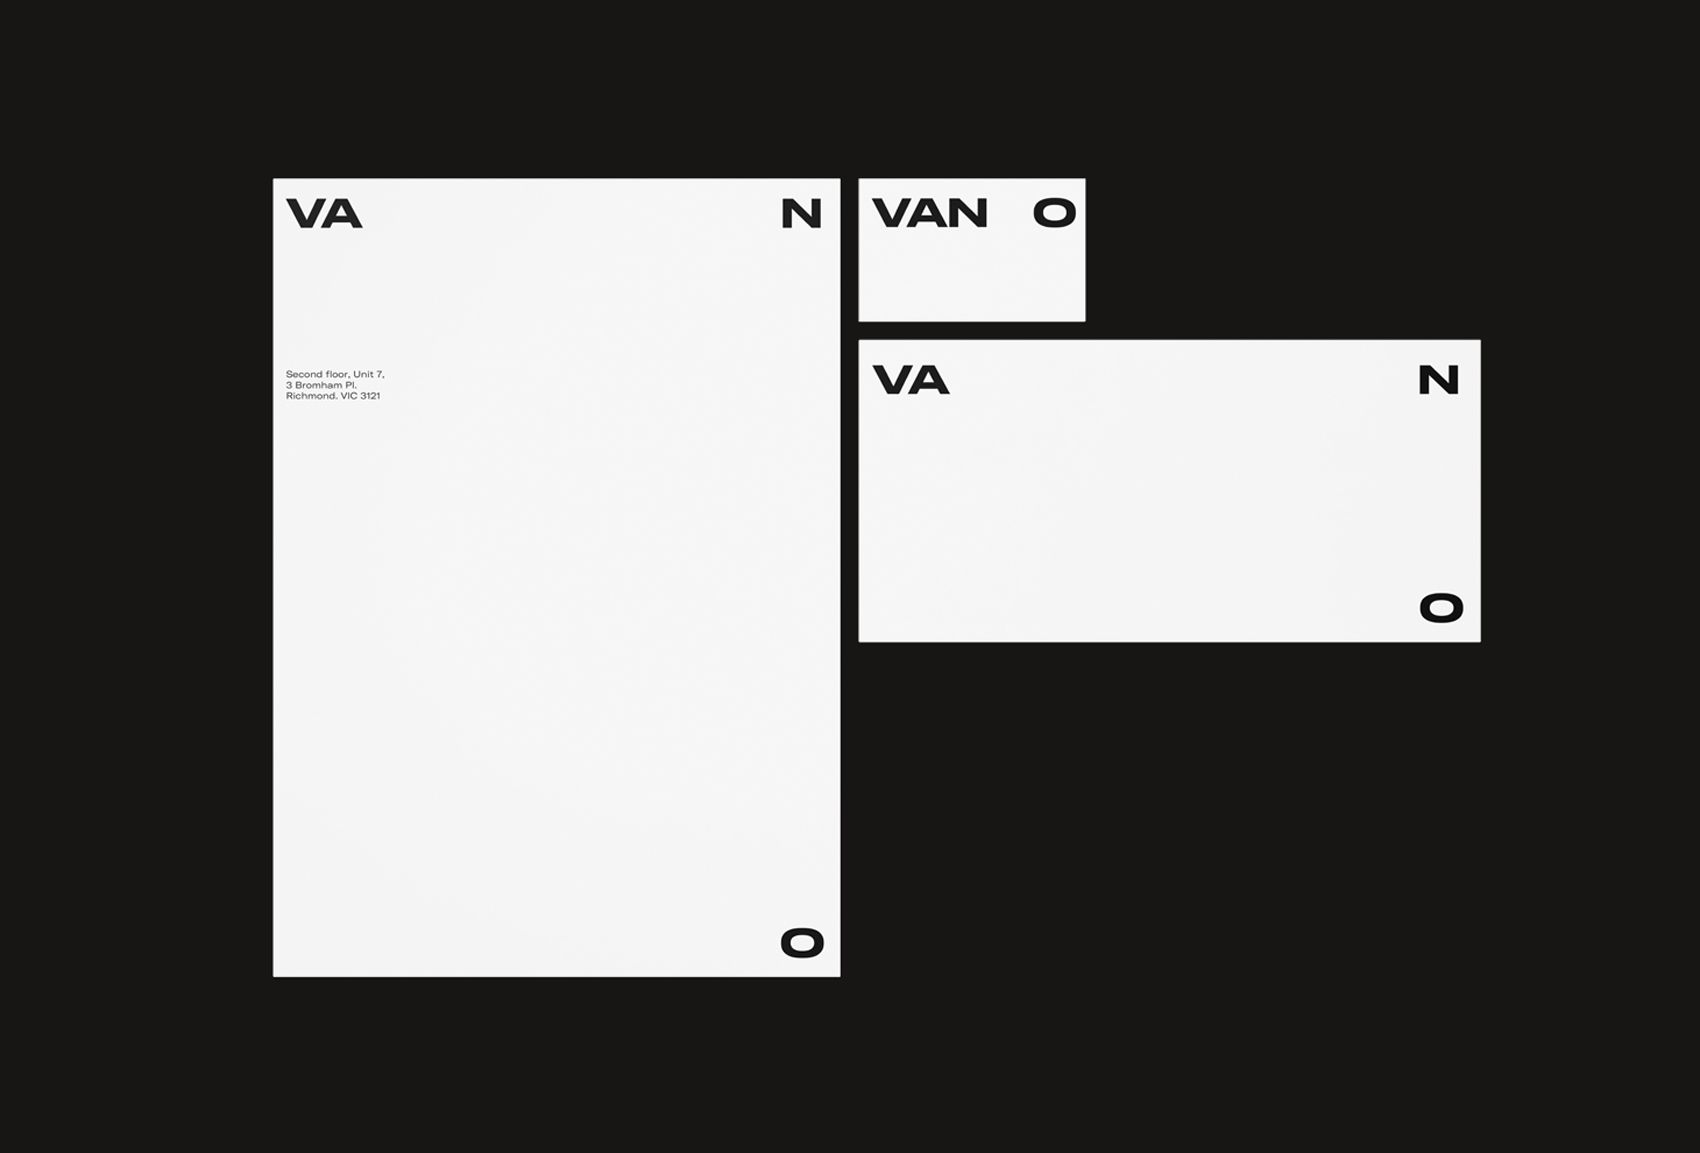 Picture of 4 designed by Luis Coderque for the project VAN O. Published on the Visual Journal in date 28 April 2017